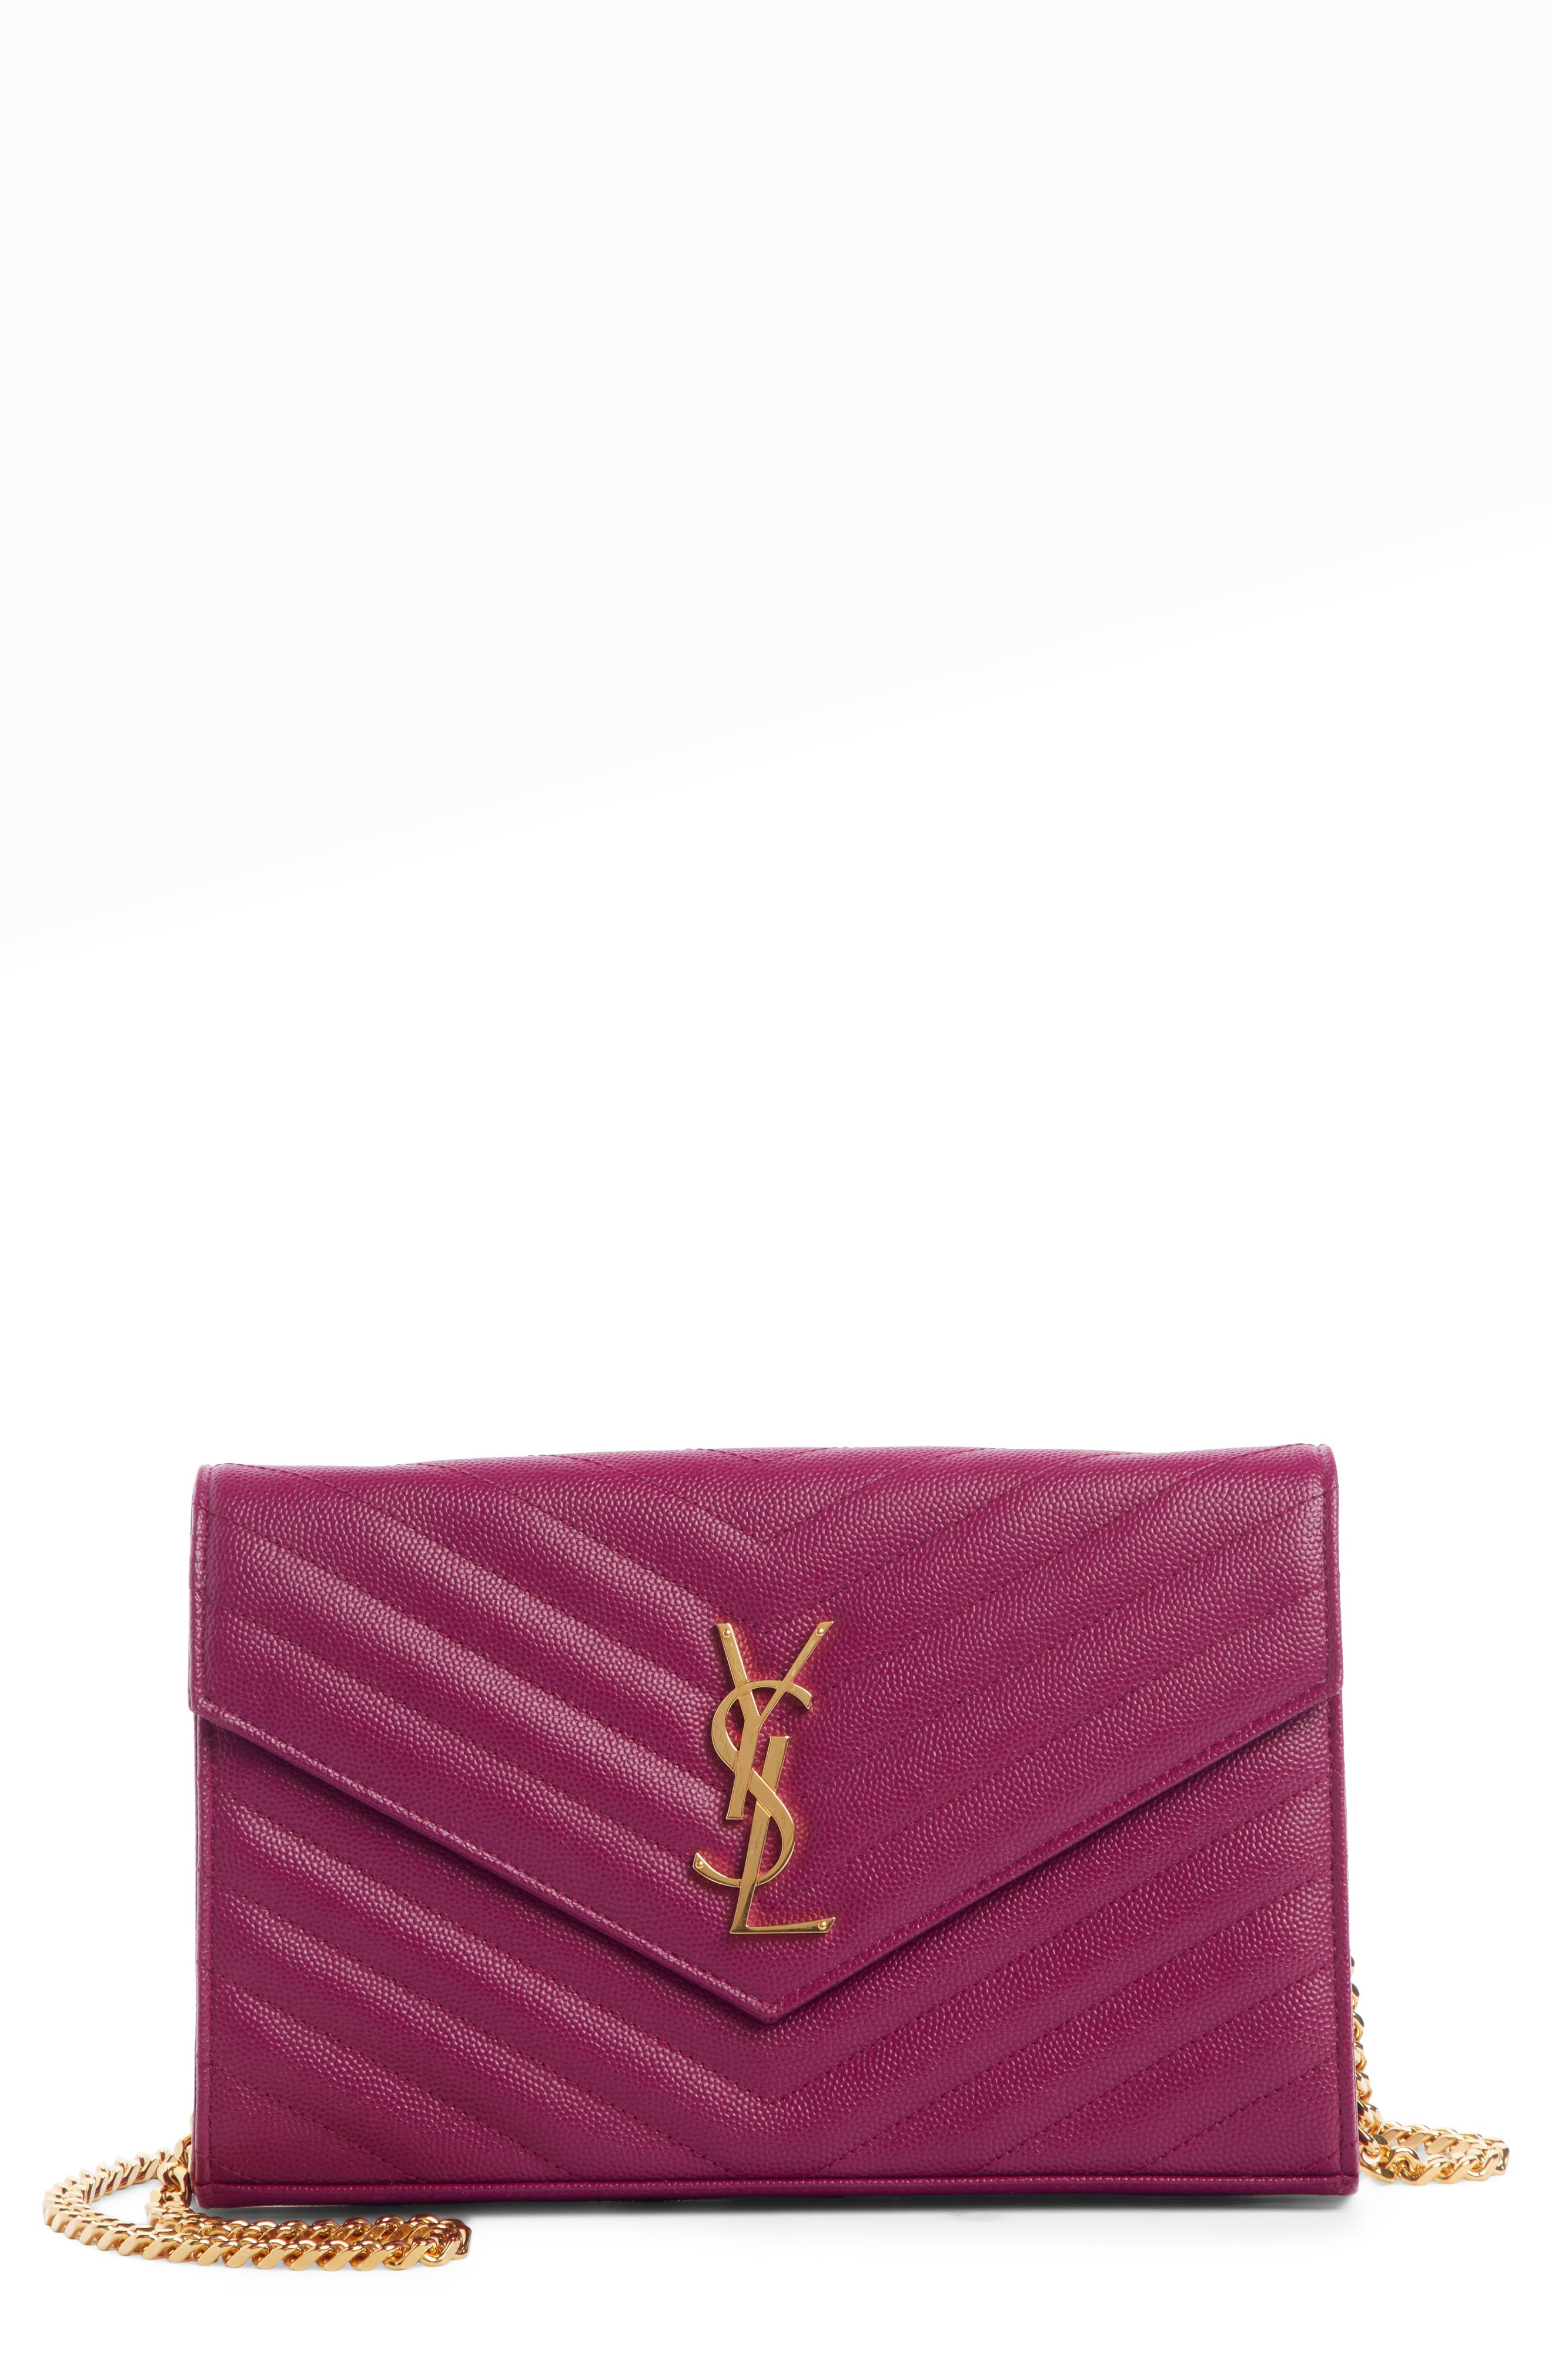 SAINT LAURENT Large Monogram Quilted Leather Wallet on a Chain, Main, color, DARK GRAPE